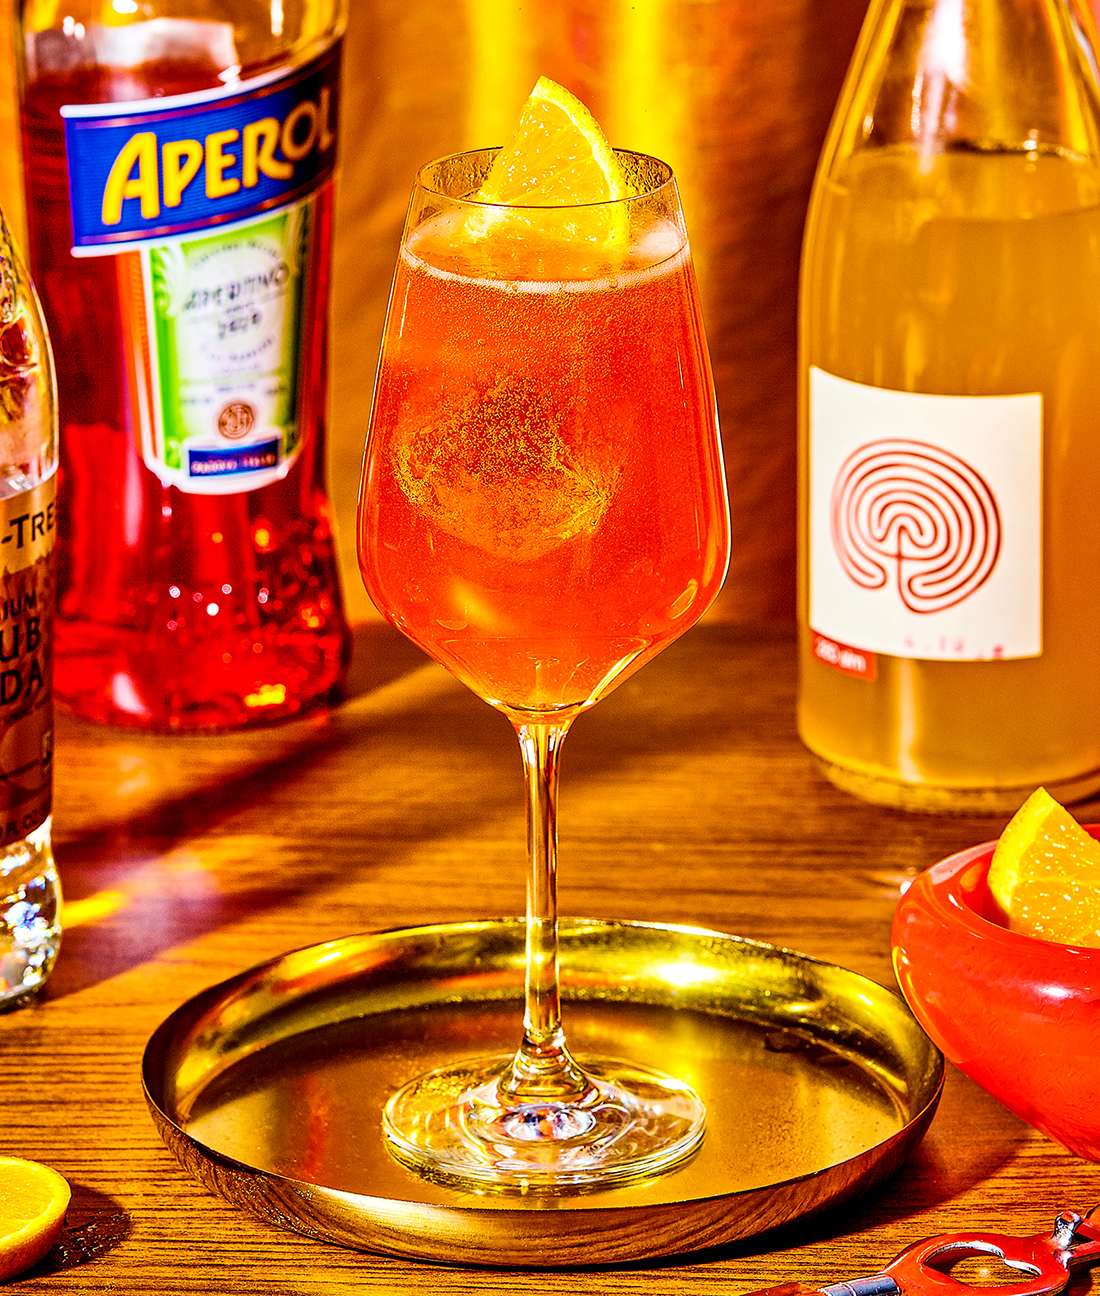 Best Aperol Spritz Recipe How To Make Aperol Spritz Cocktail